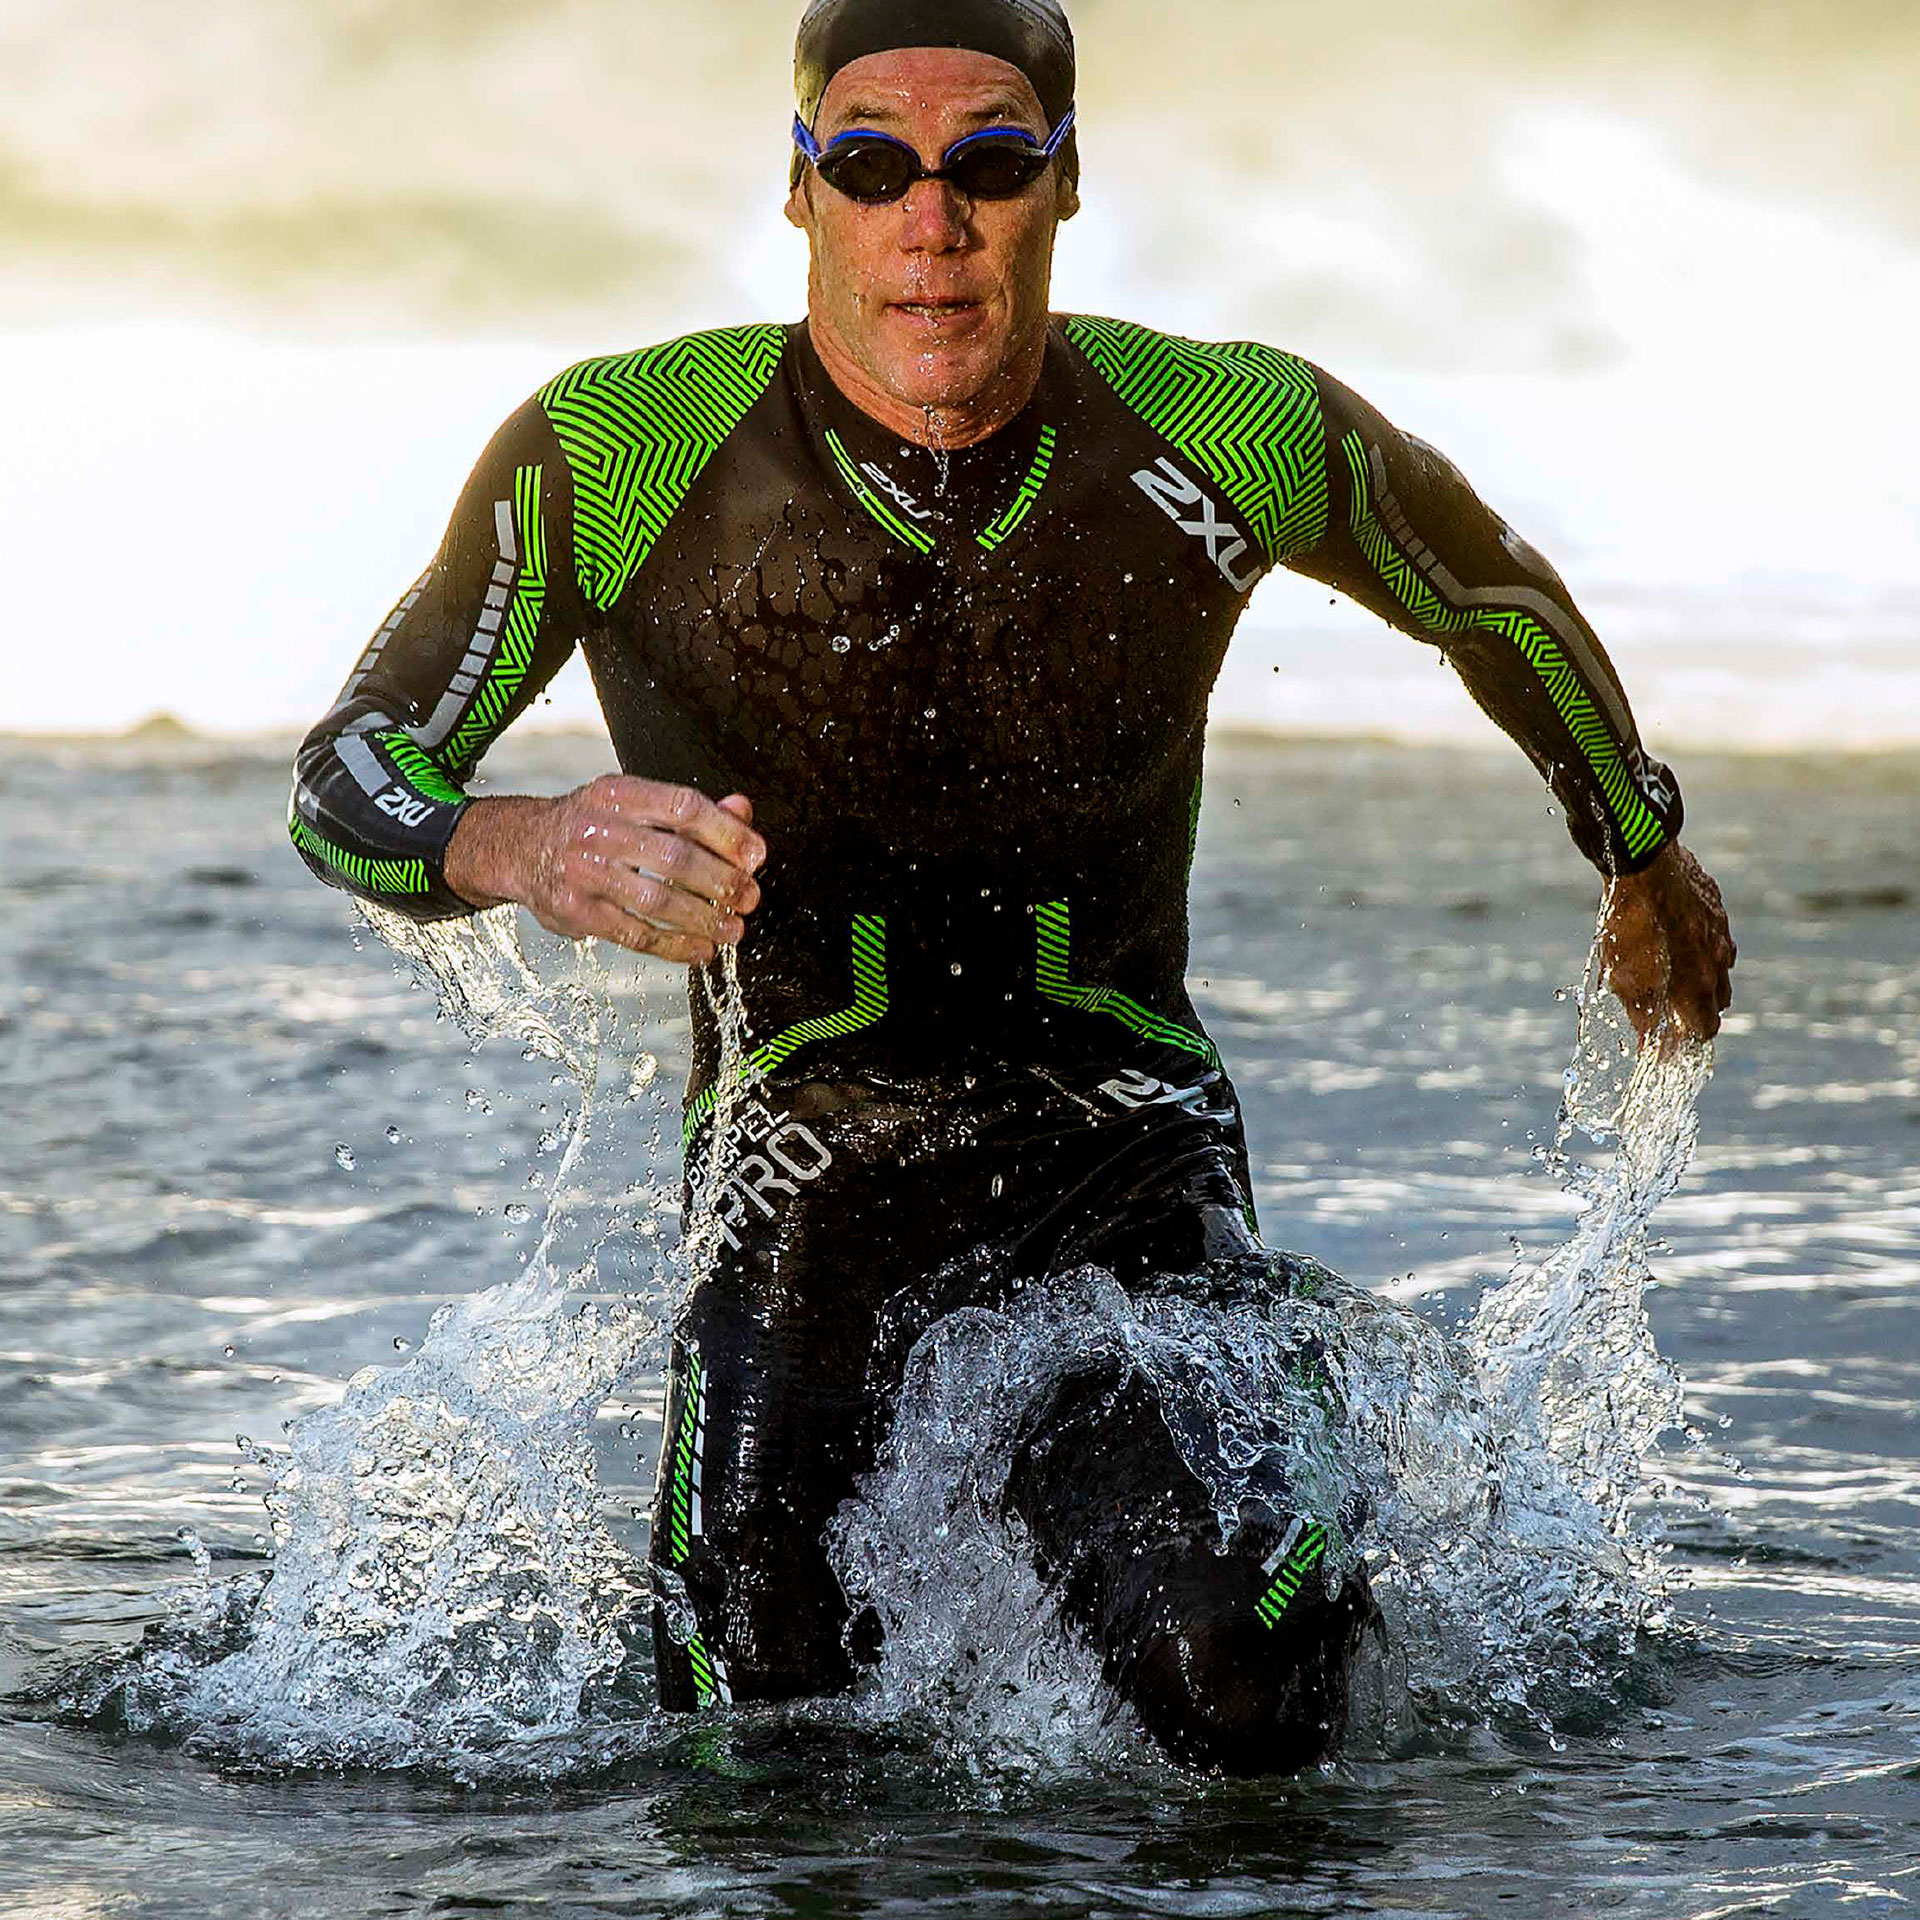 b34310eb1b Guide to the Triathlon Products for 2018